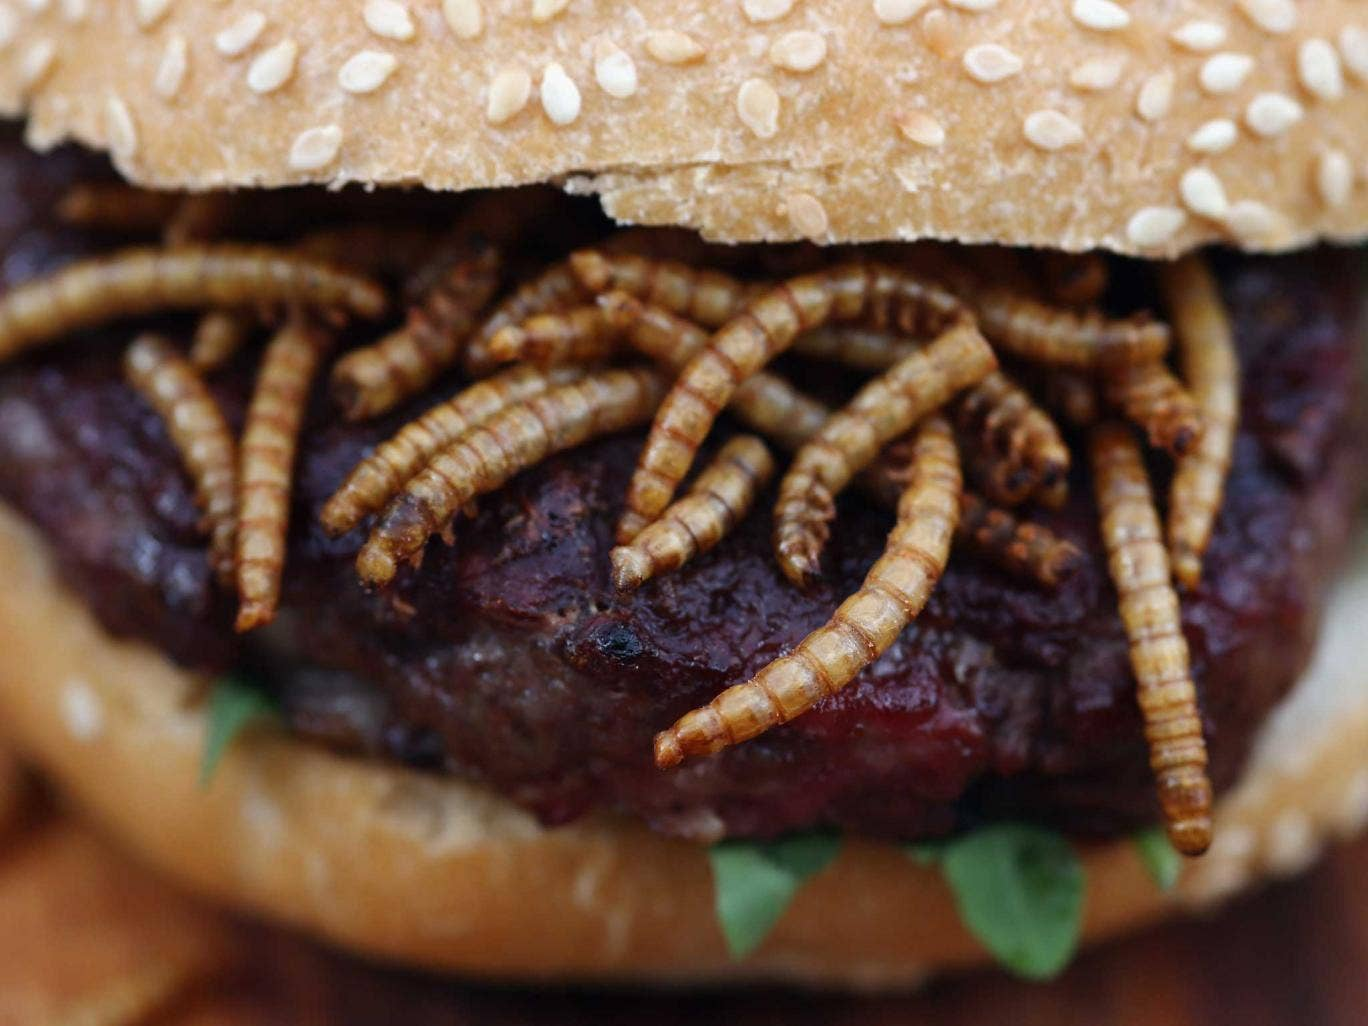 A pigeon burger with mealworms at the 'pop up' stand at One New Change